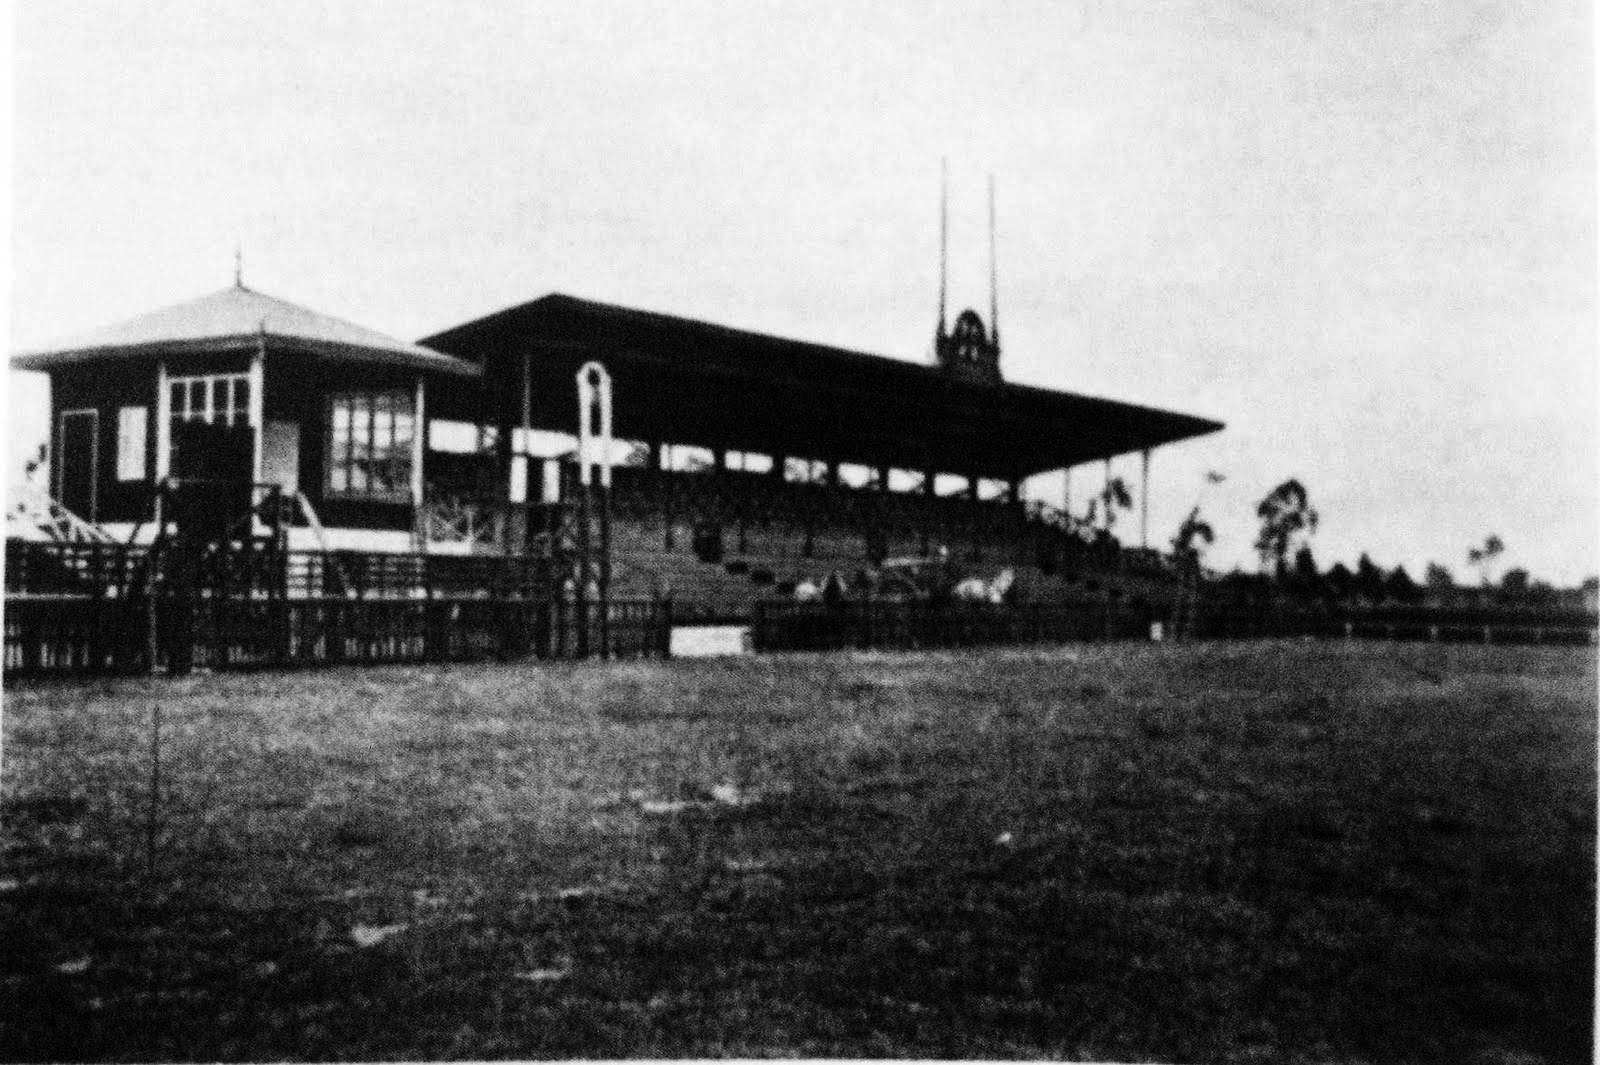 Hopodromo de Can Tunis 1893-1934